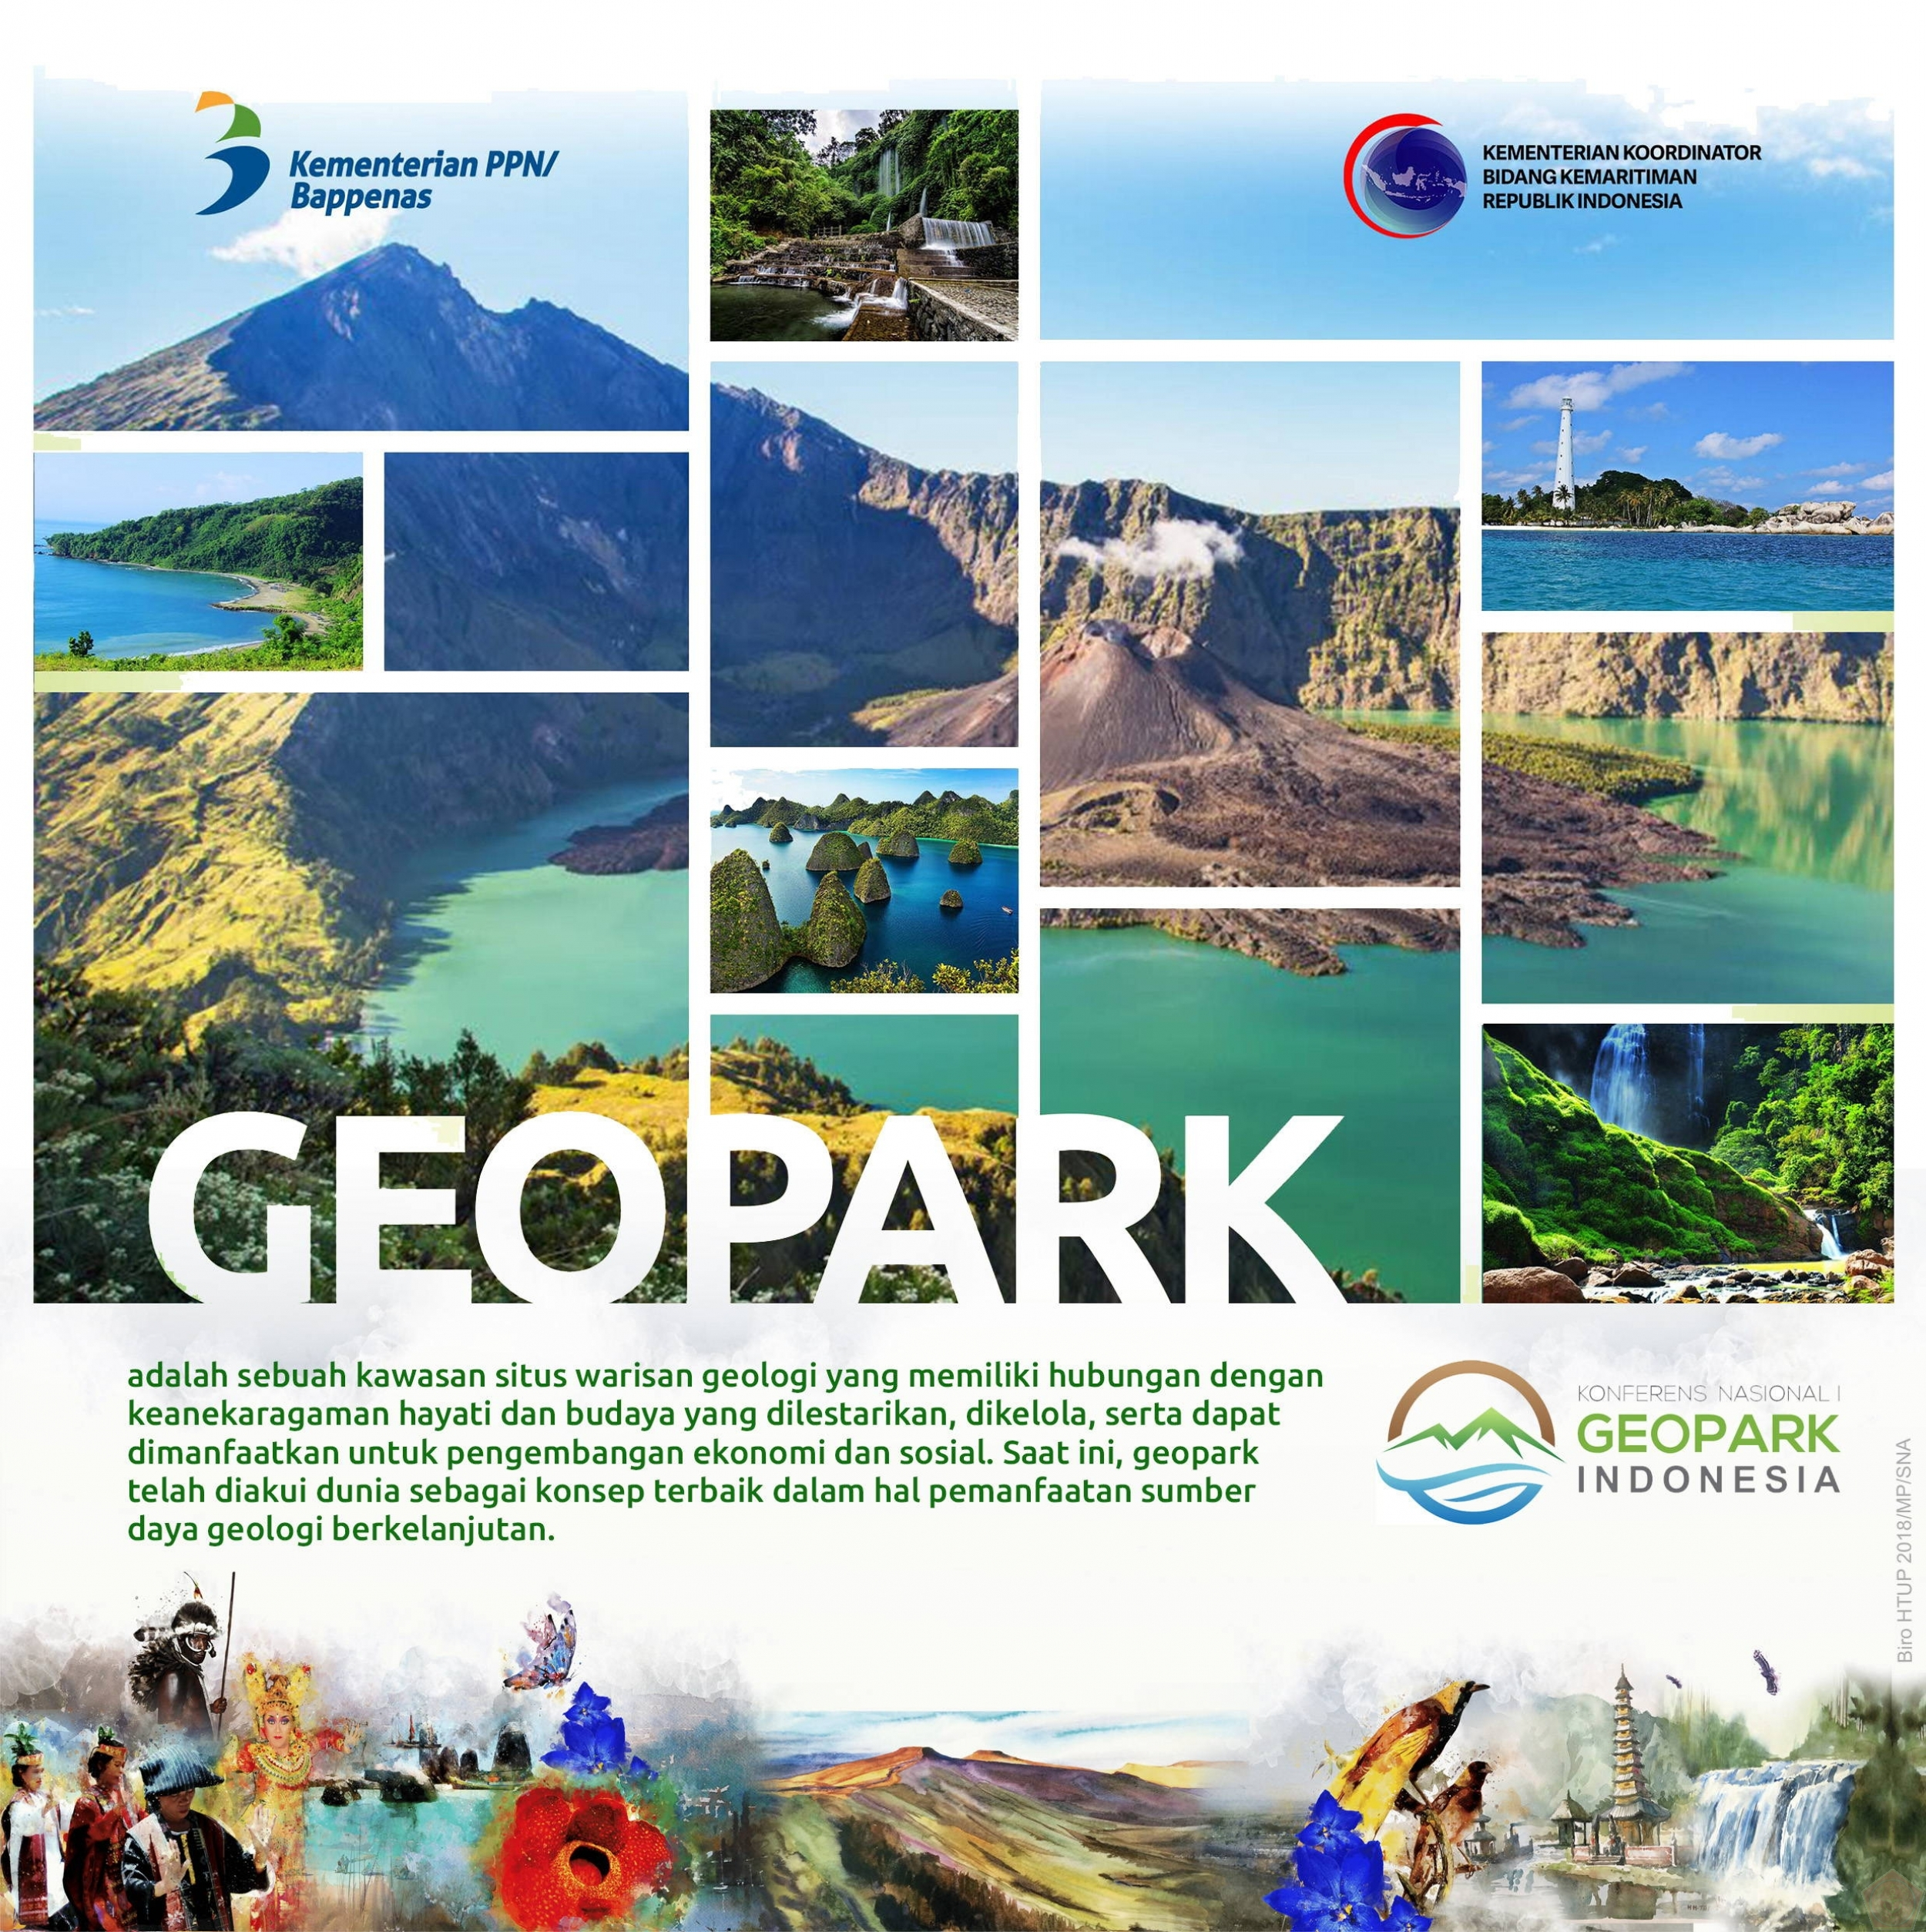 Geopark Indonesia Mendunia: Implementasi Sustainable Development Goalsmelalui Pengembangan Geopark